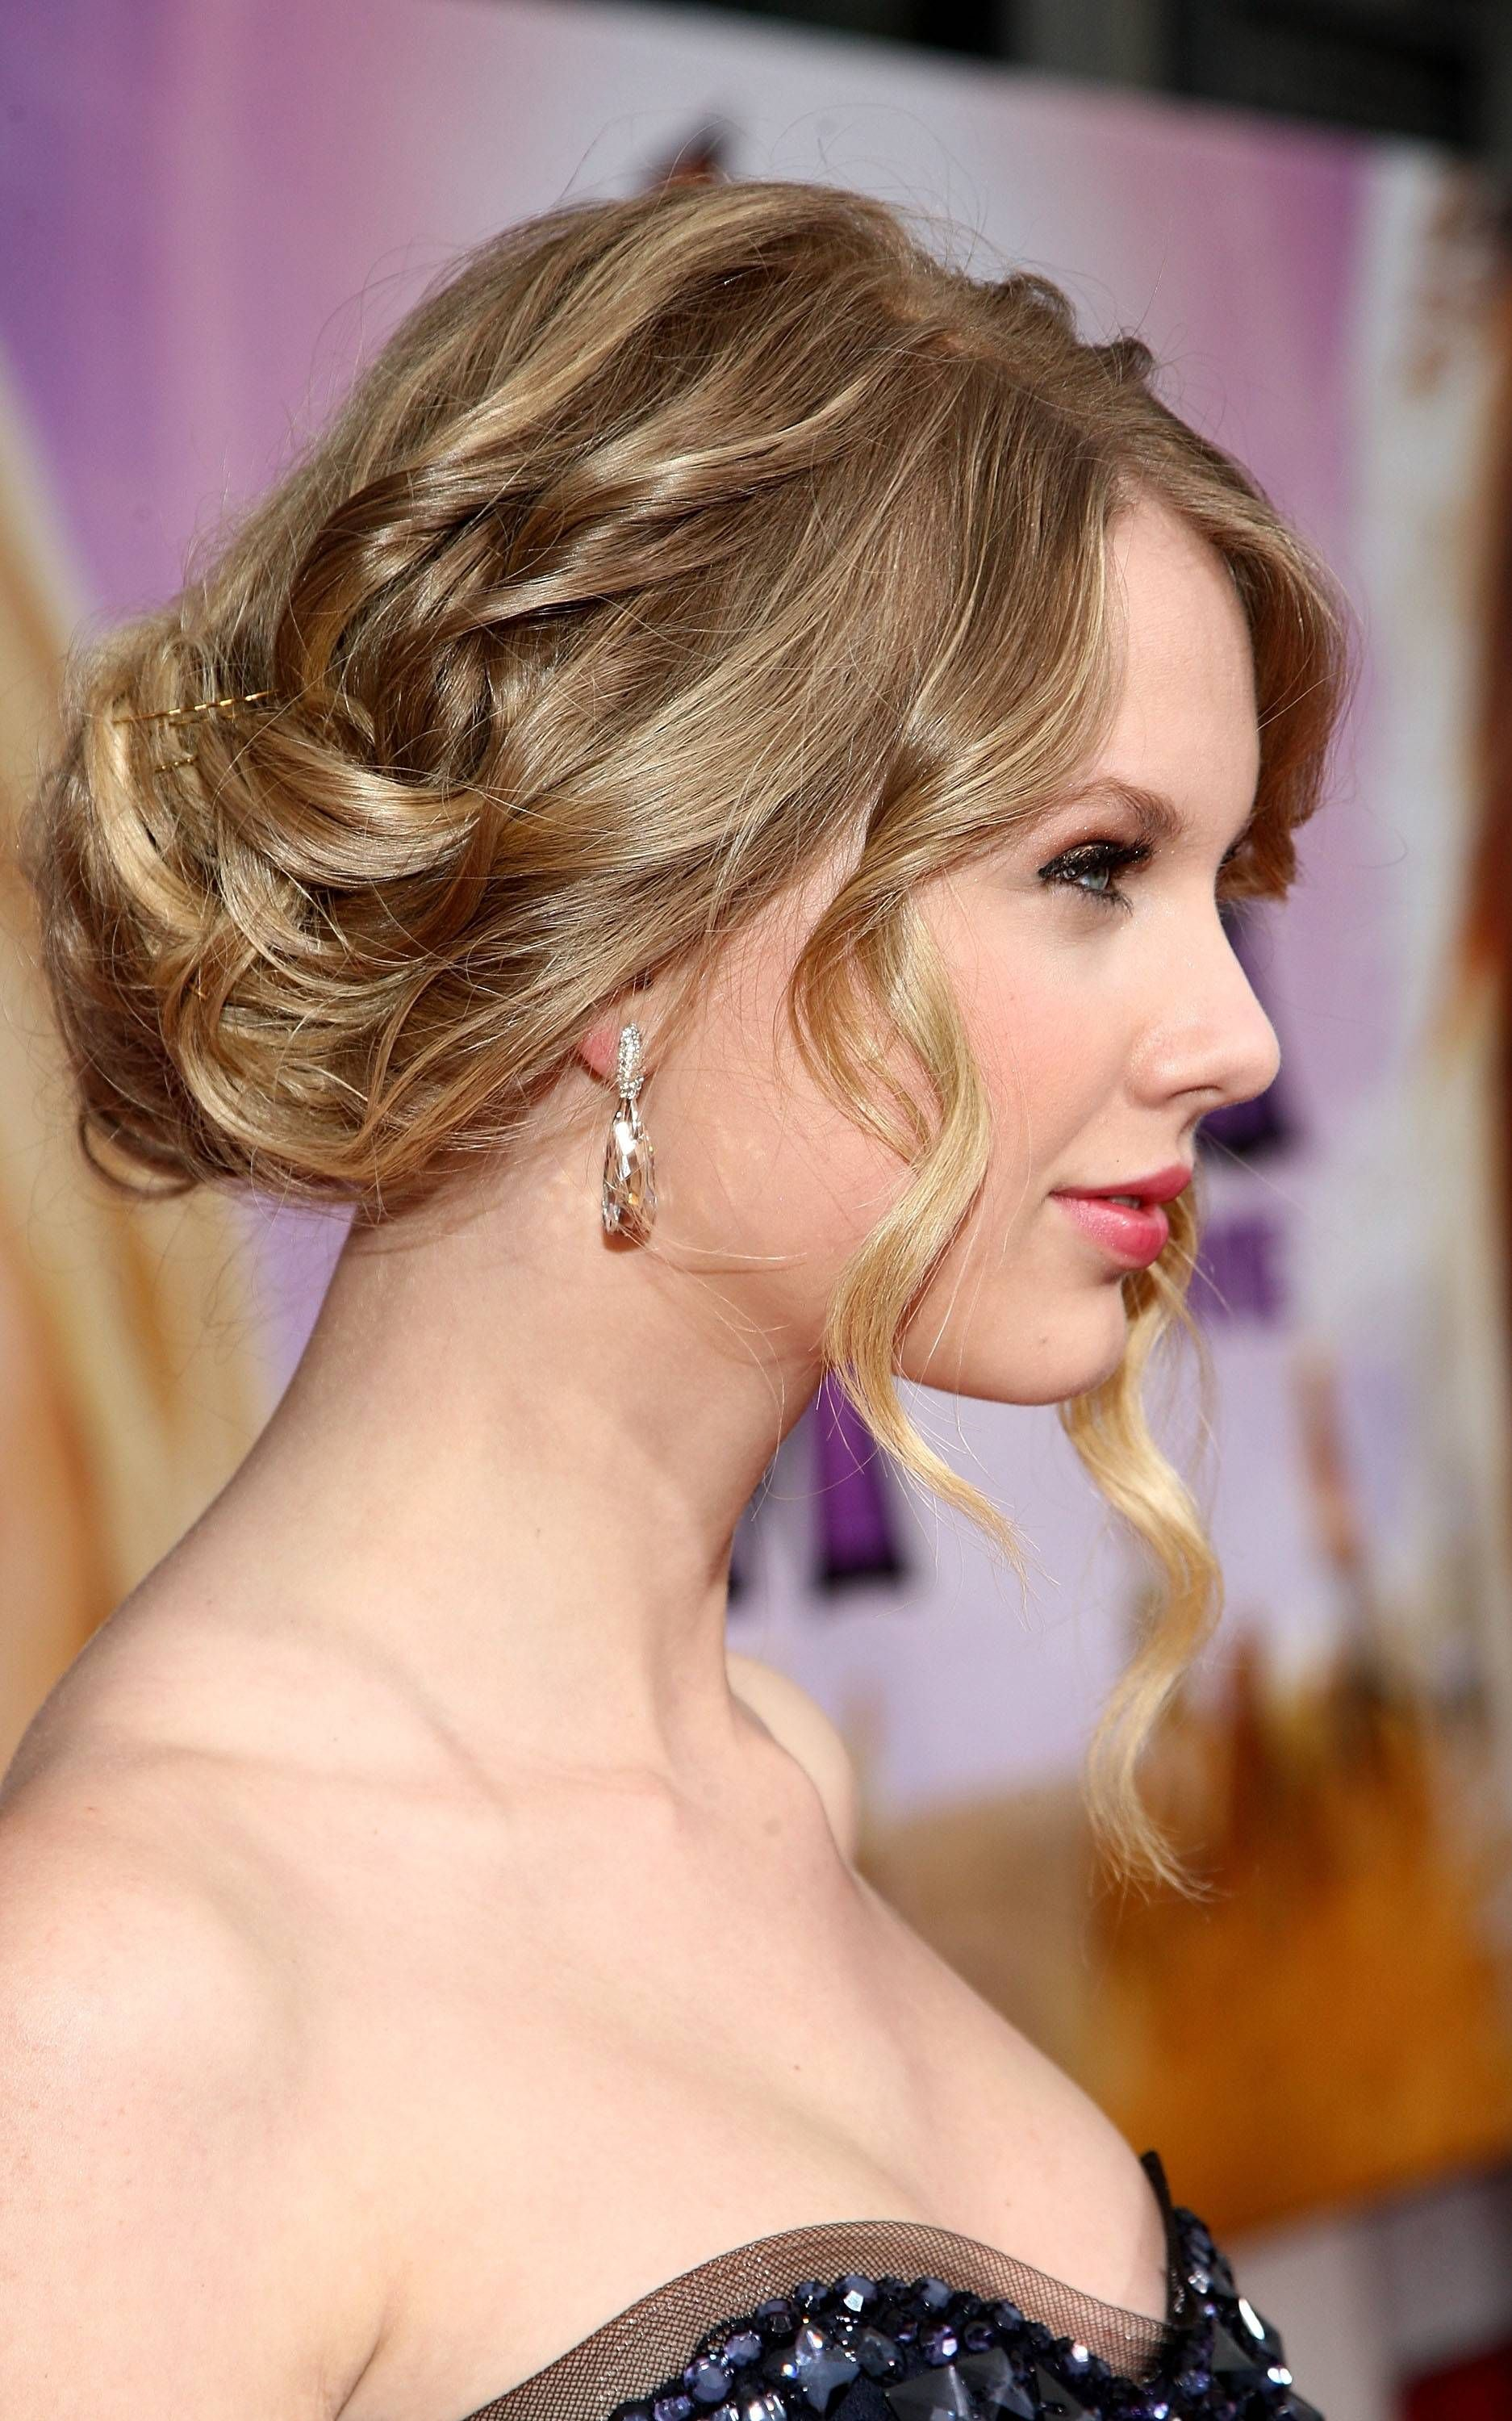 taylor swift hairstyles | taylor swift, swift and taylor swift